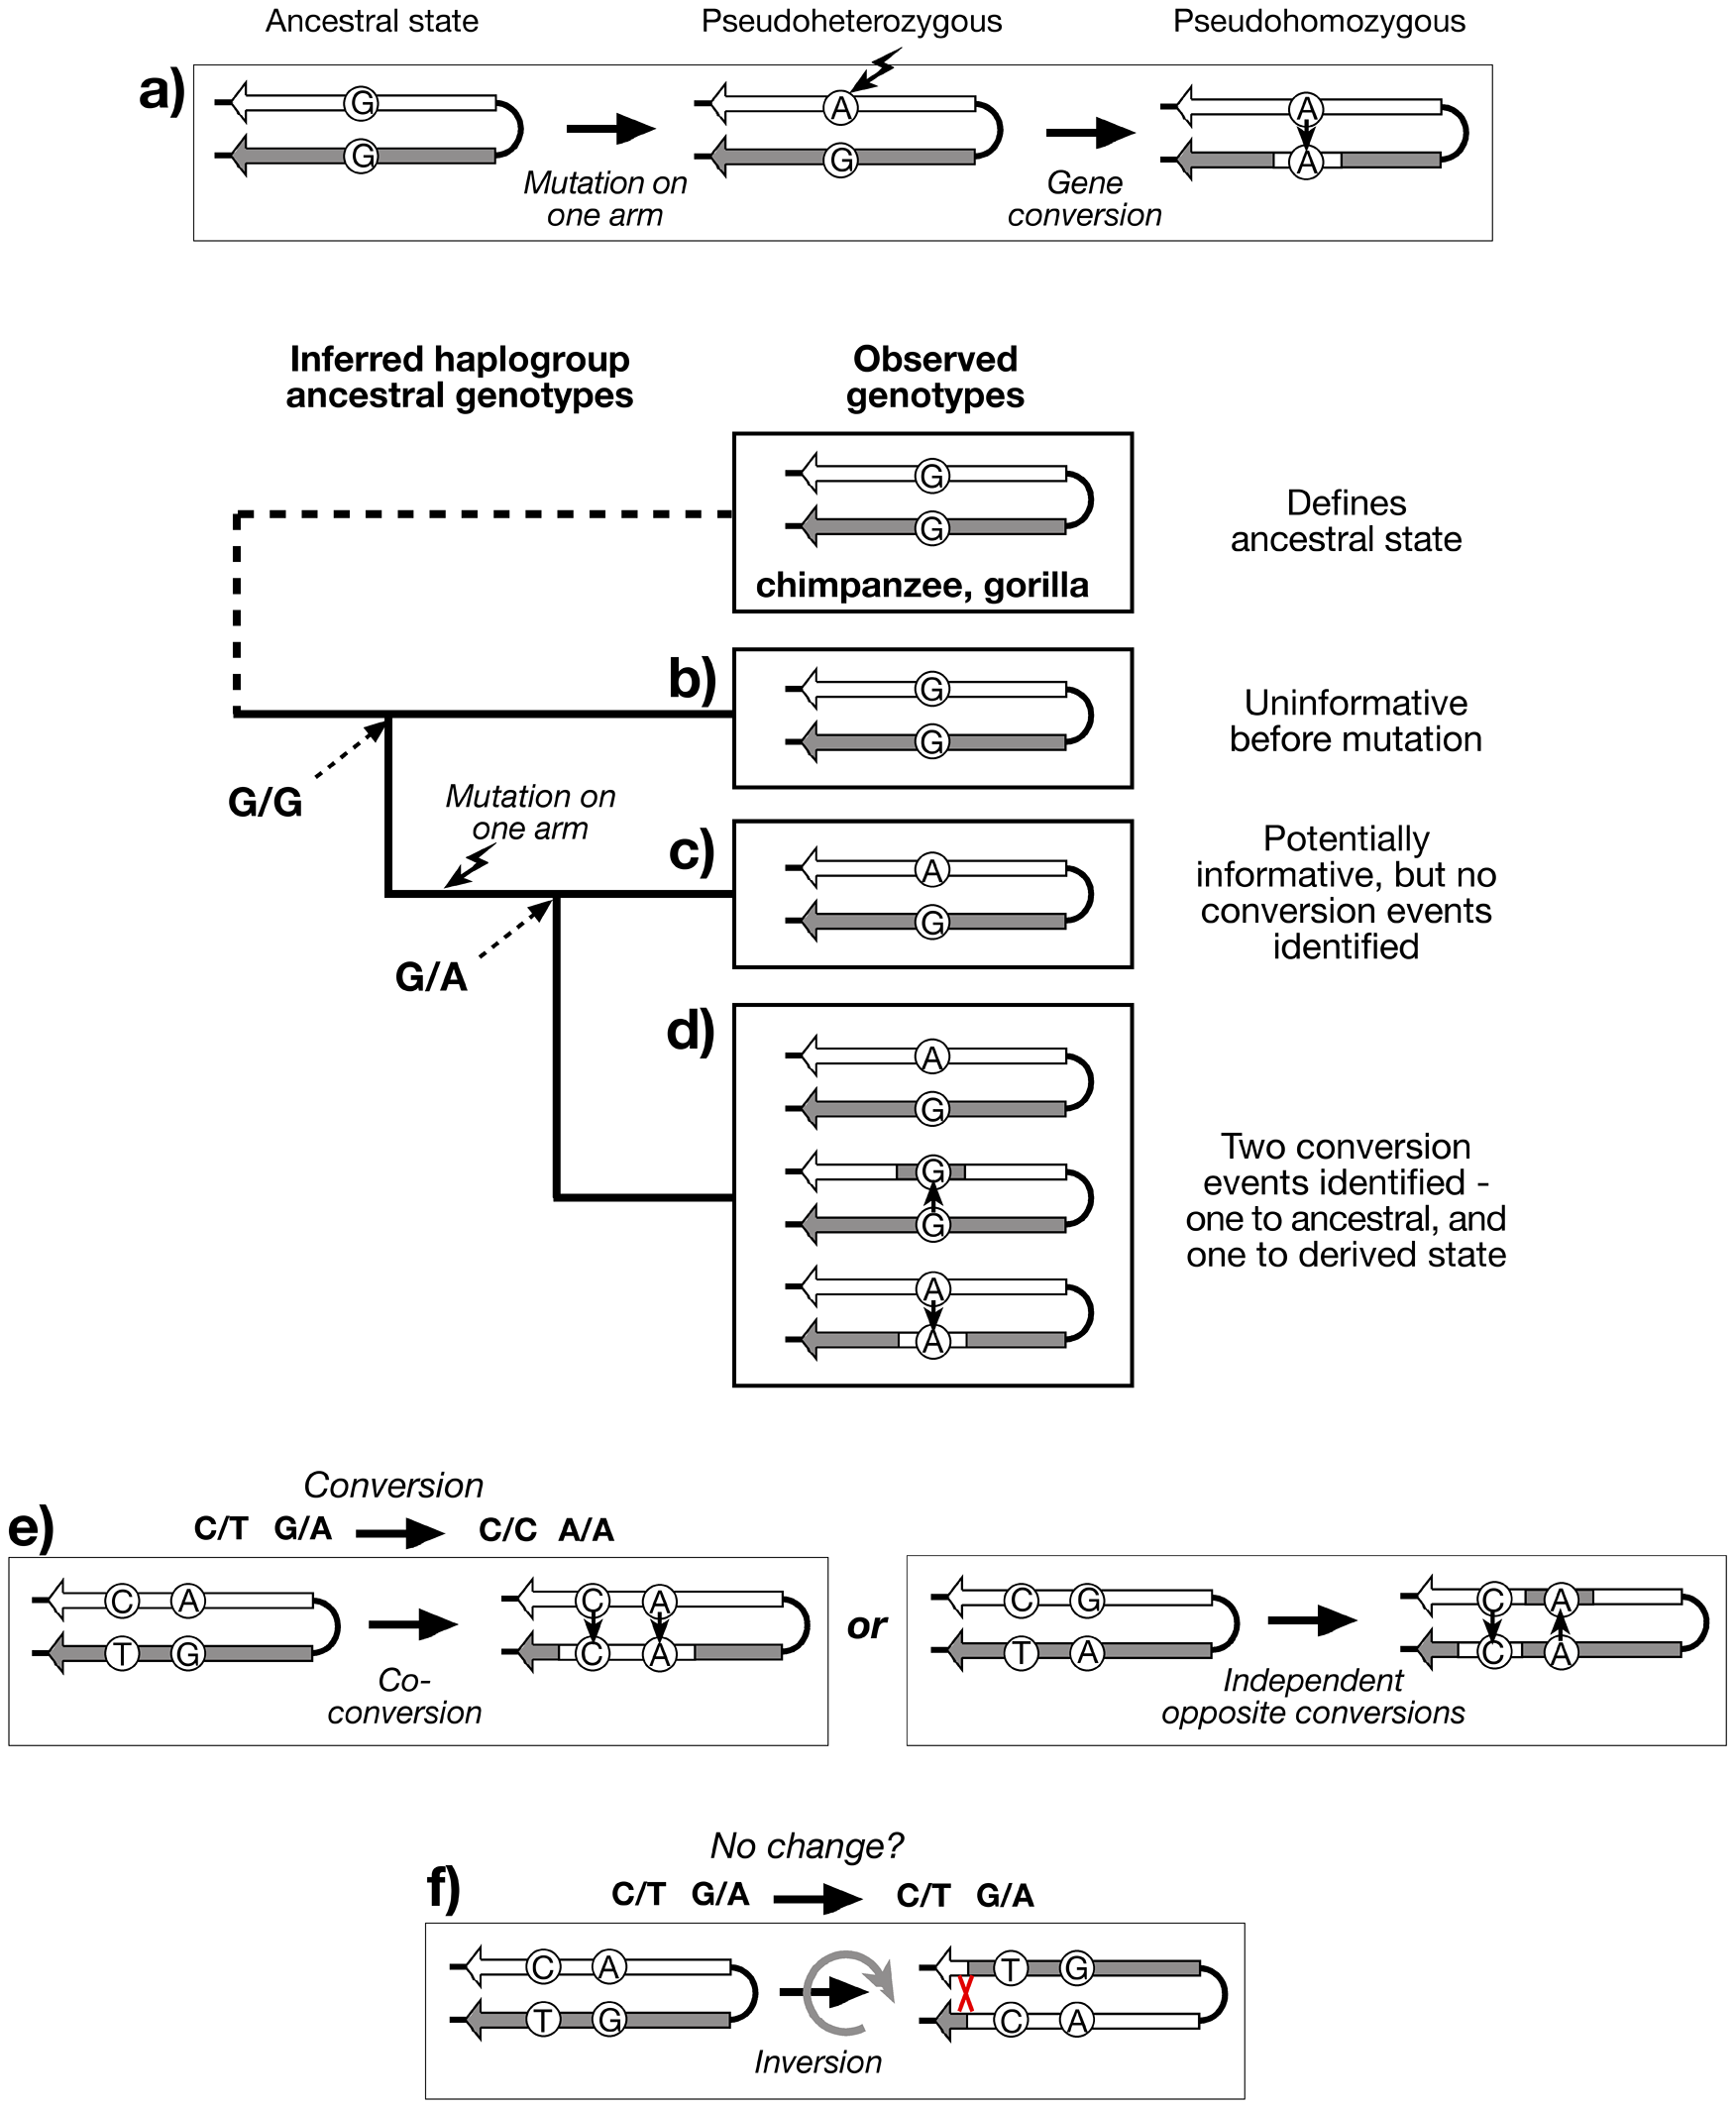 Recognition of gene conversion, co-conversion and inversion events.